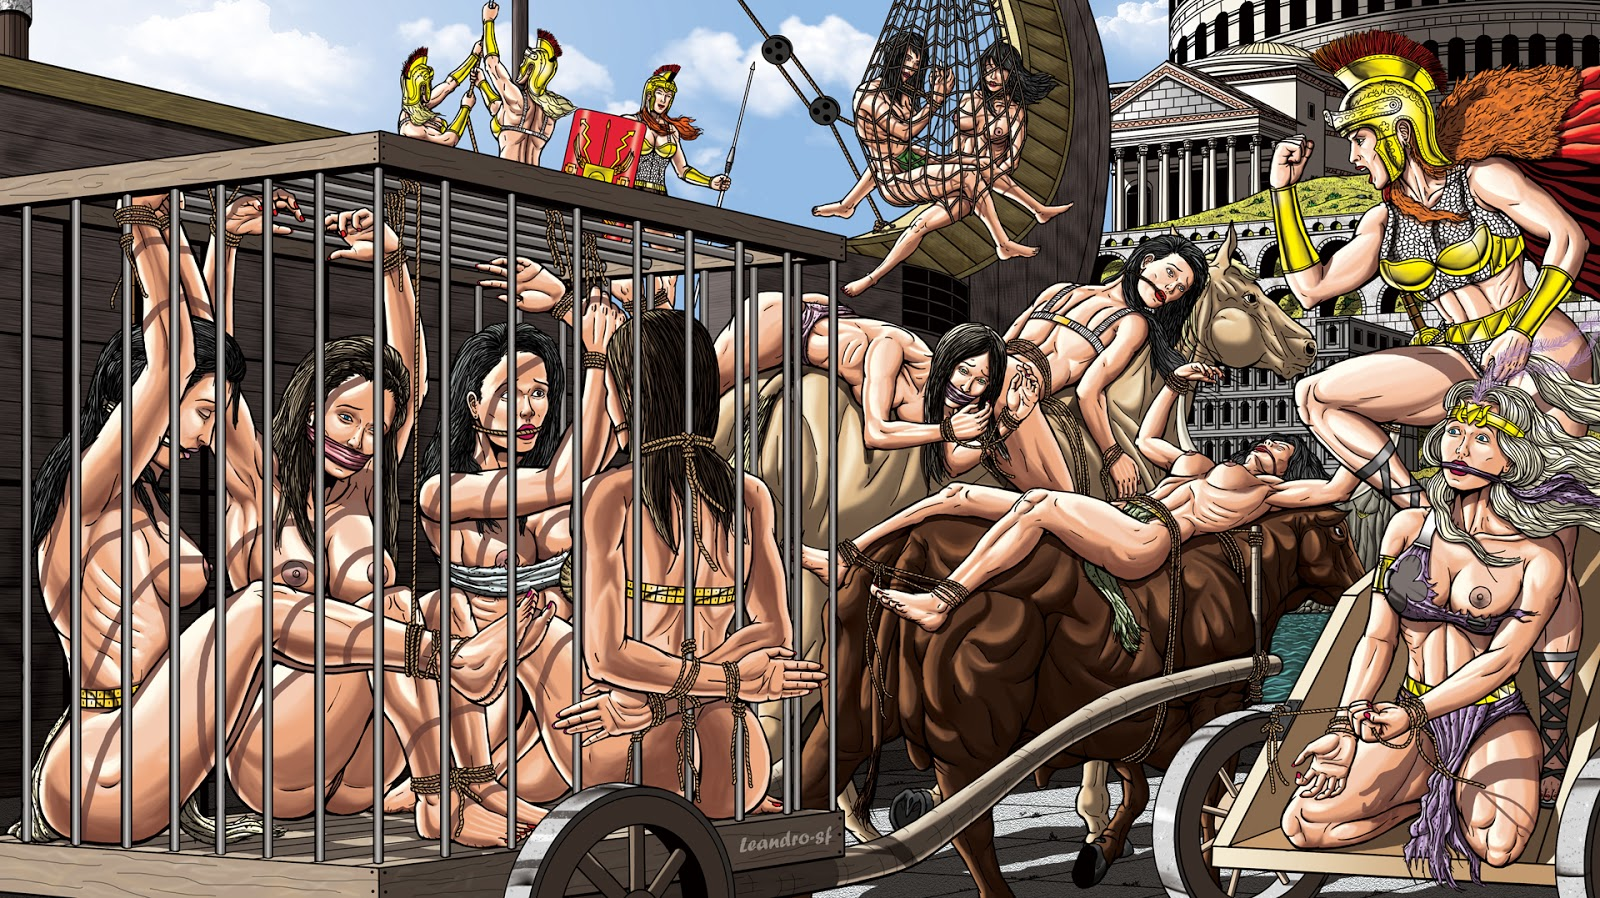 Cartoon naked women at a slave market sex image